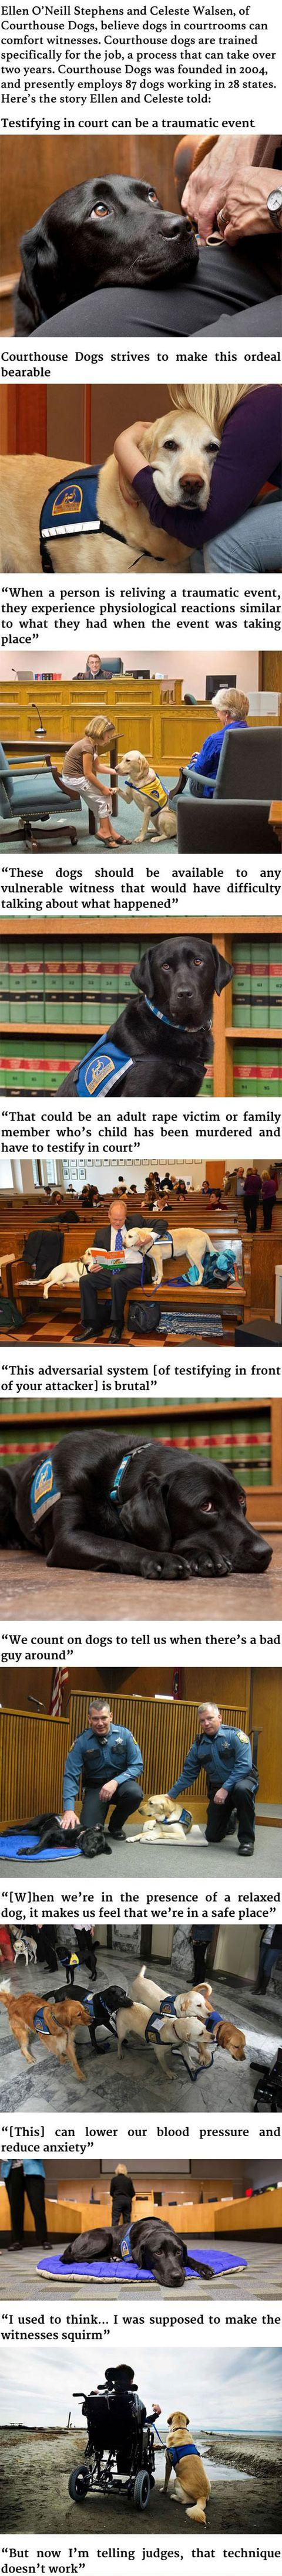 WITNESSES IN COURTROOMS